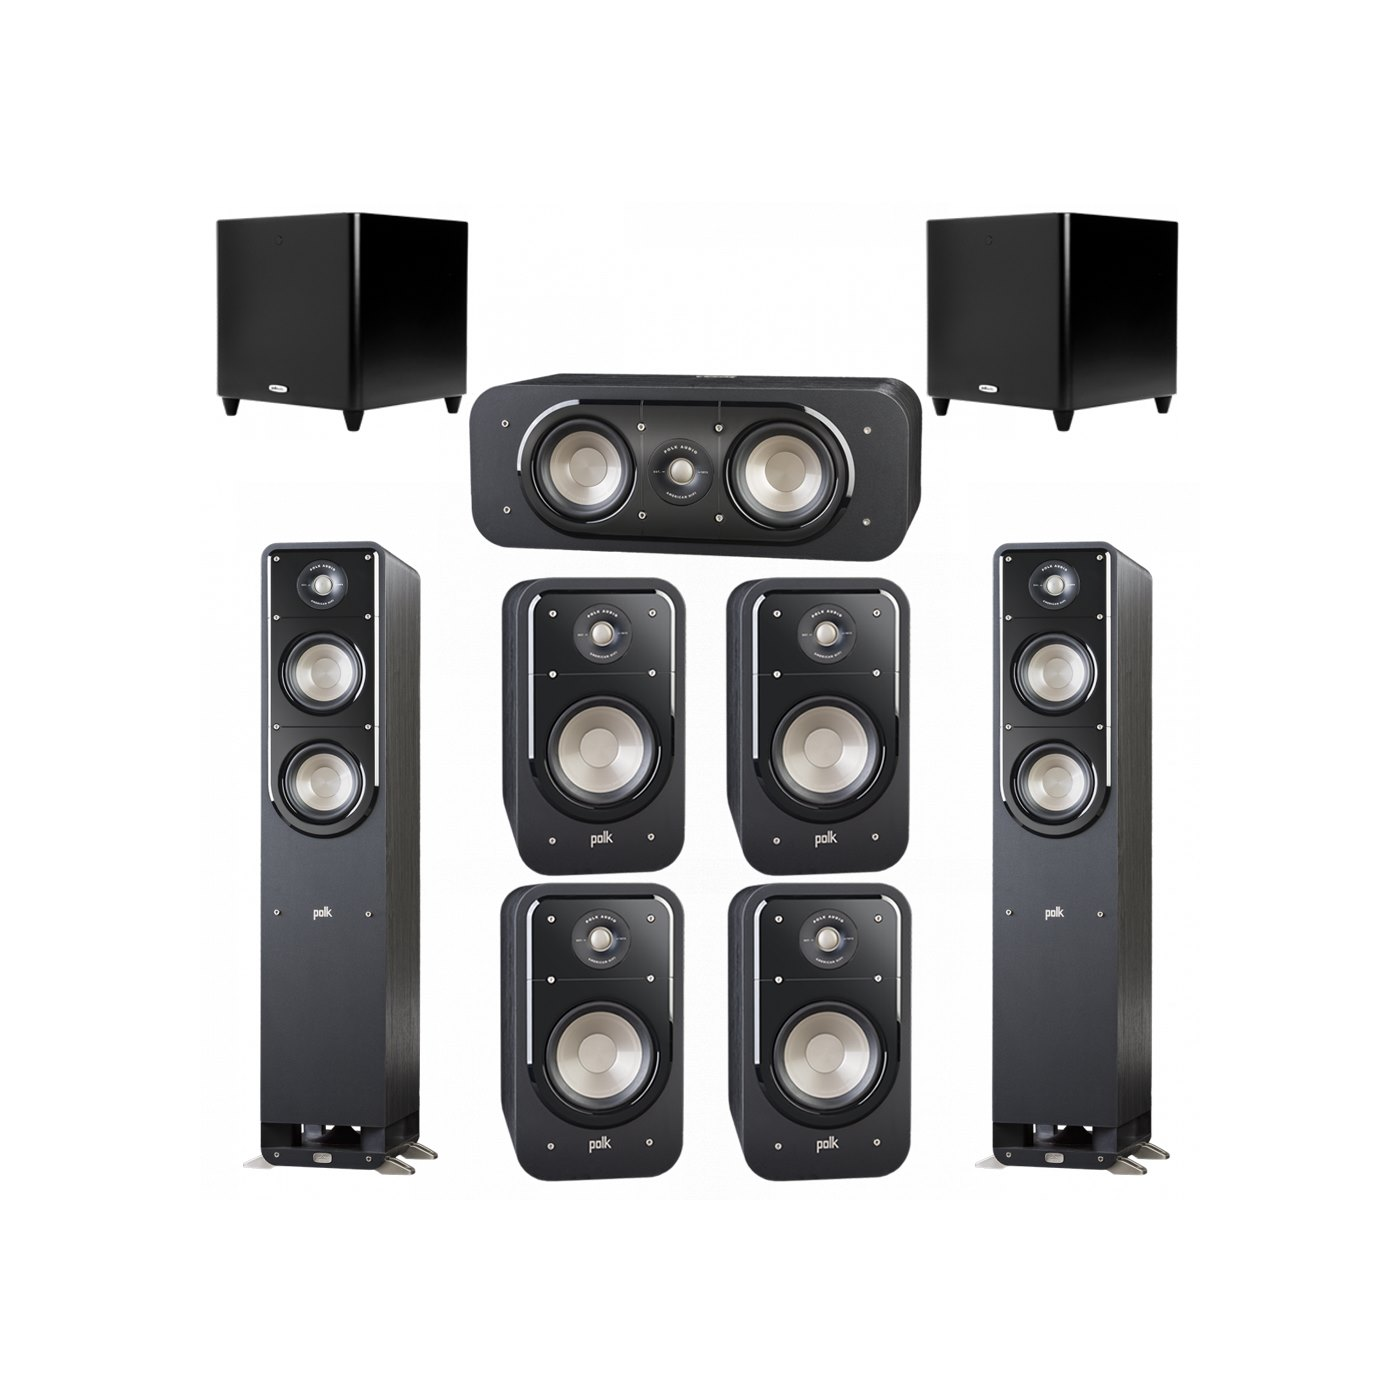 Polk Audio Signature 7.2 System with 2 S50 Tower Speaker, 1 Polk S30 Center Speaker, 4 Polk S20 Bookshelf Speaker, 2 Polk DSW PRO 660 wi Subwoofer